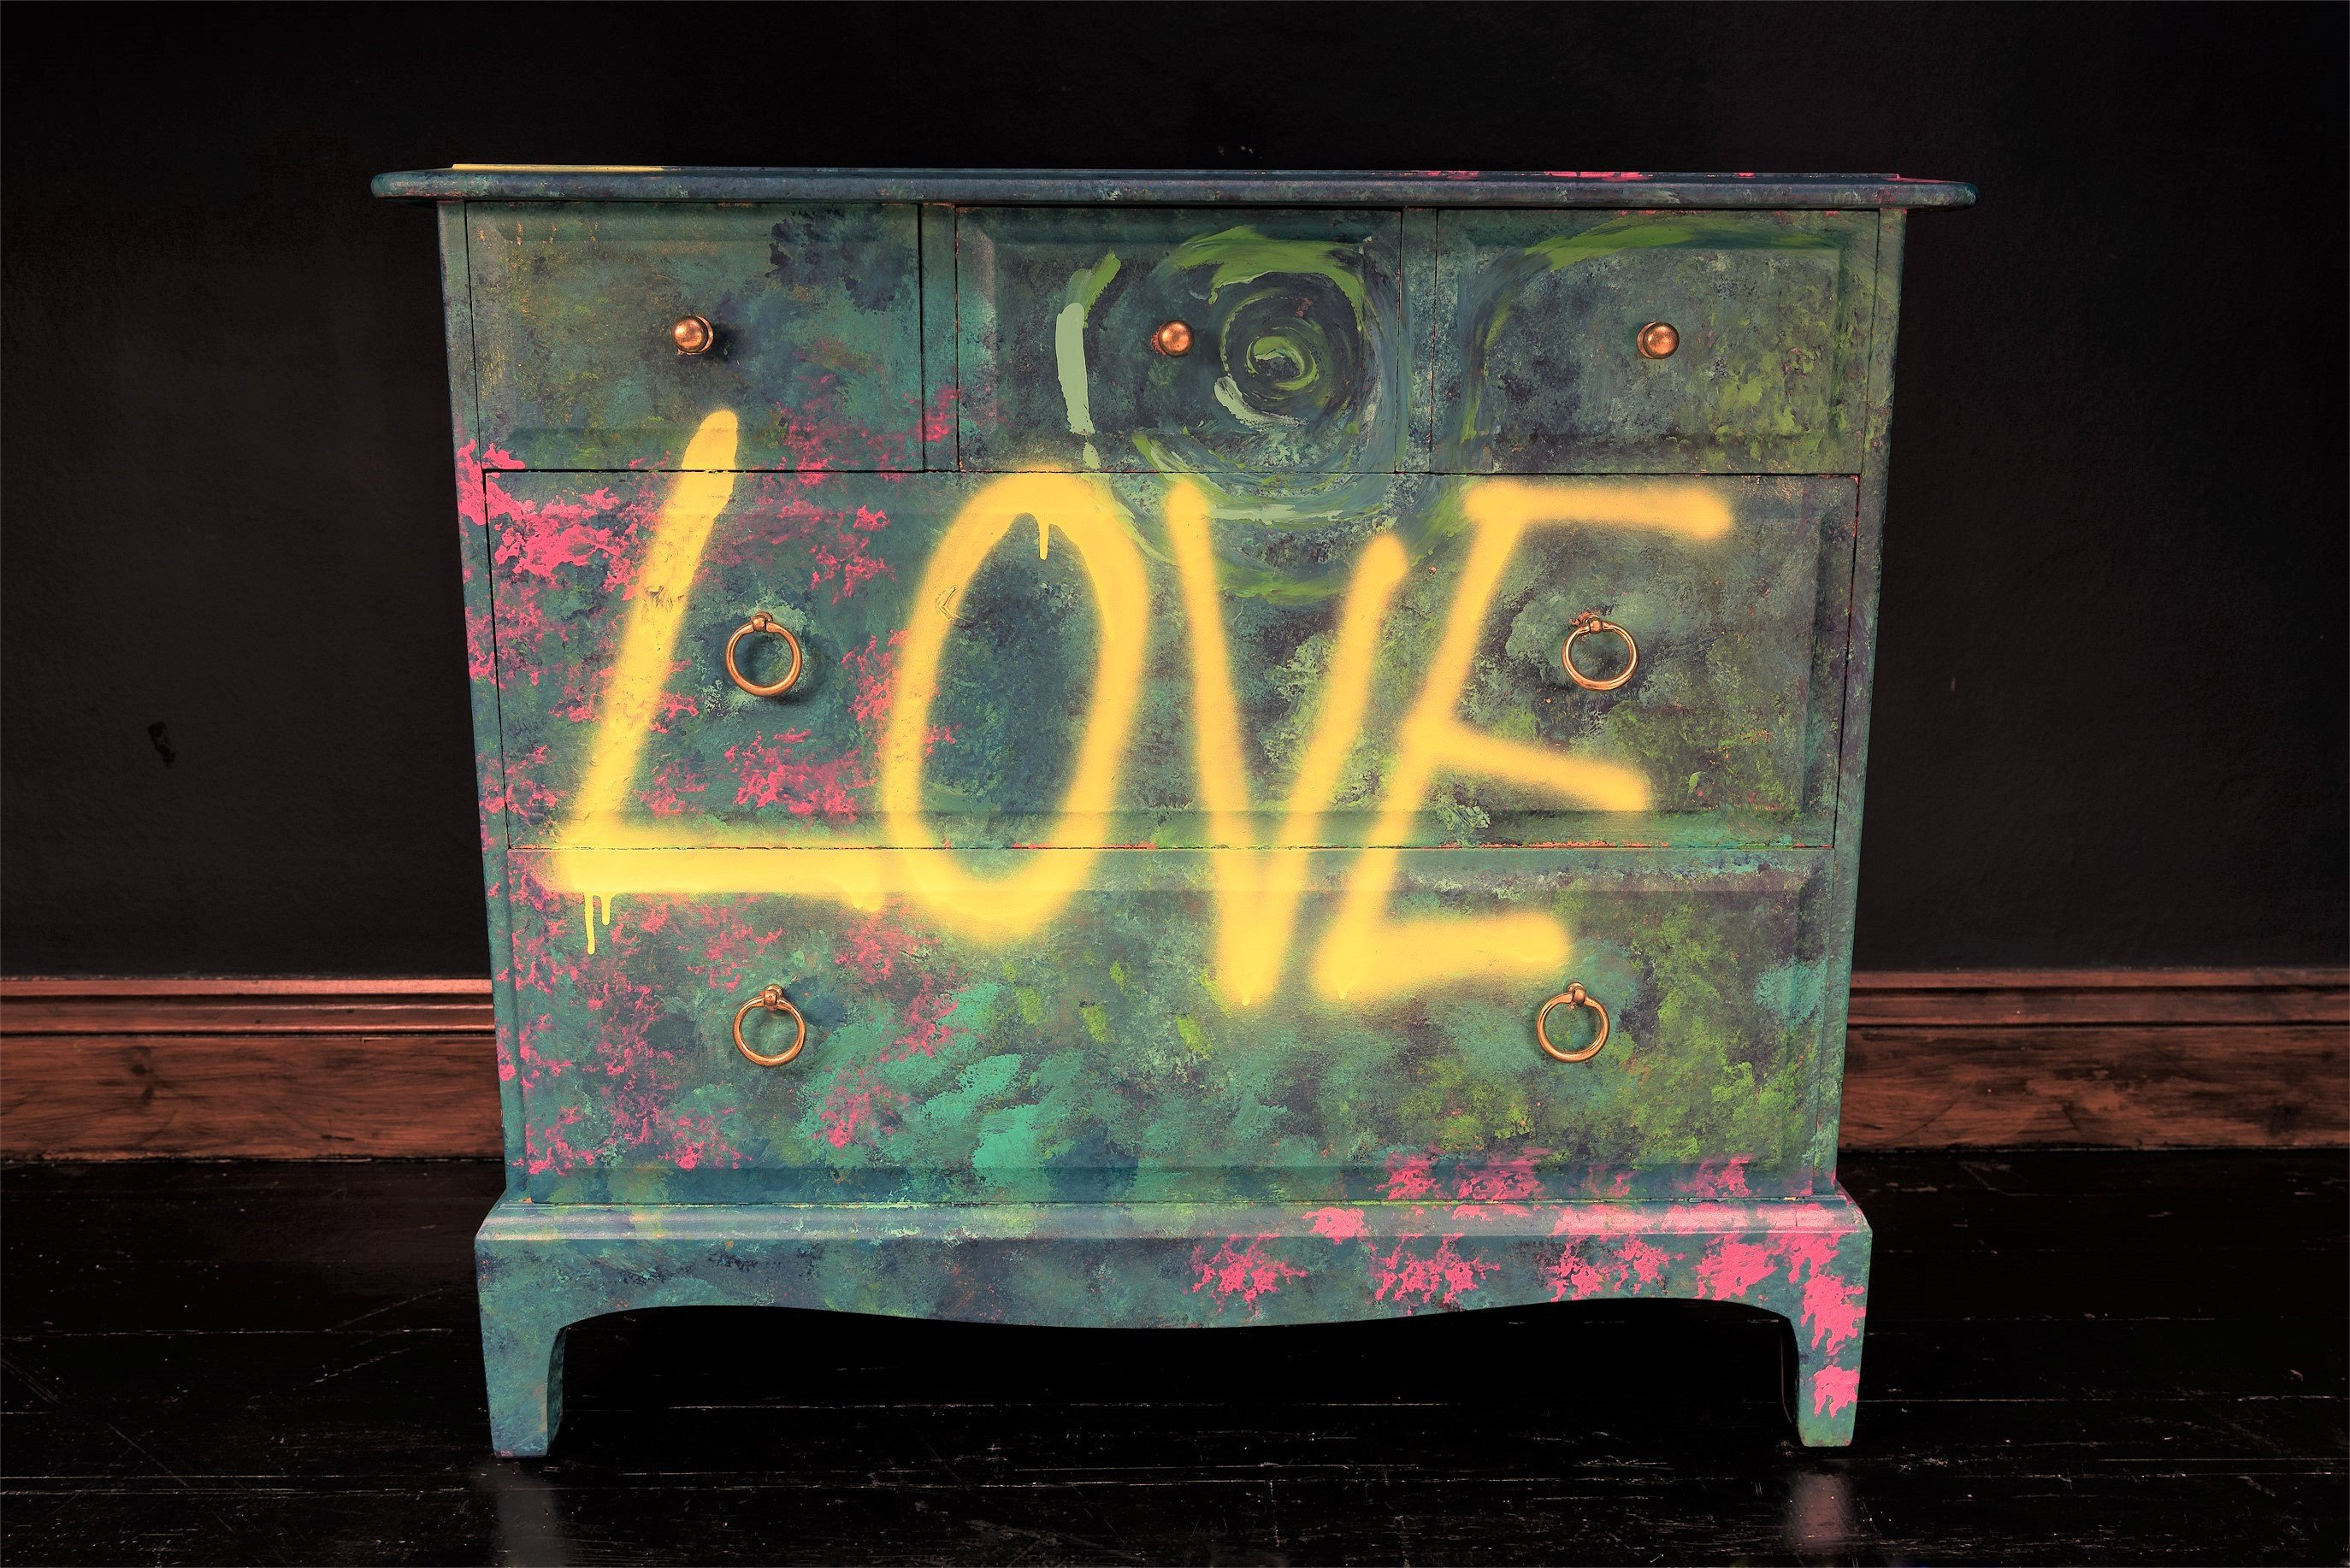 Cool Bedroom Furniture for Teenagers Inspirational Graffiti Drawers Painted Drawers Cool Office Furniture Teen Decor Industrial Tv Stand Cool Bedroom Decor Punk Furniture Luxury